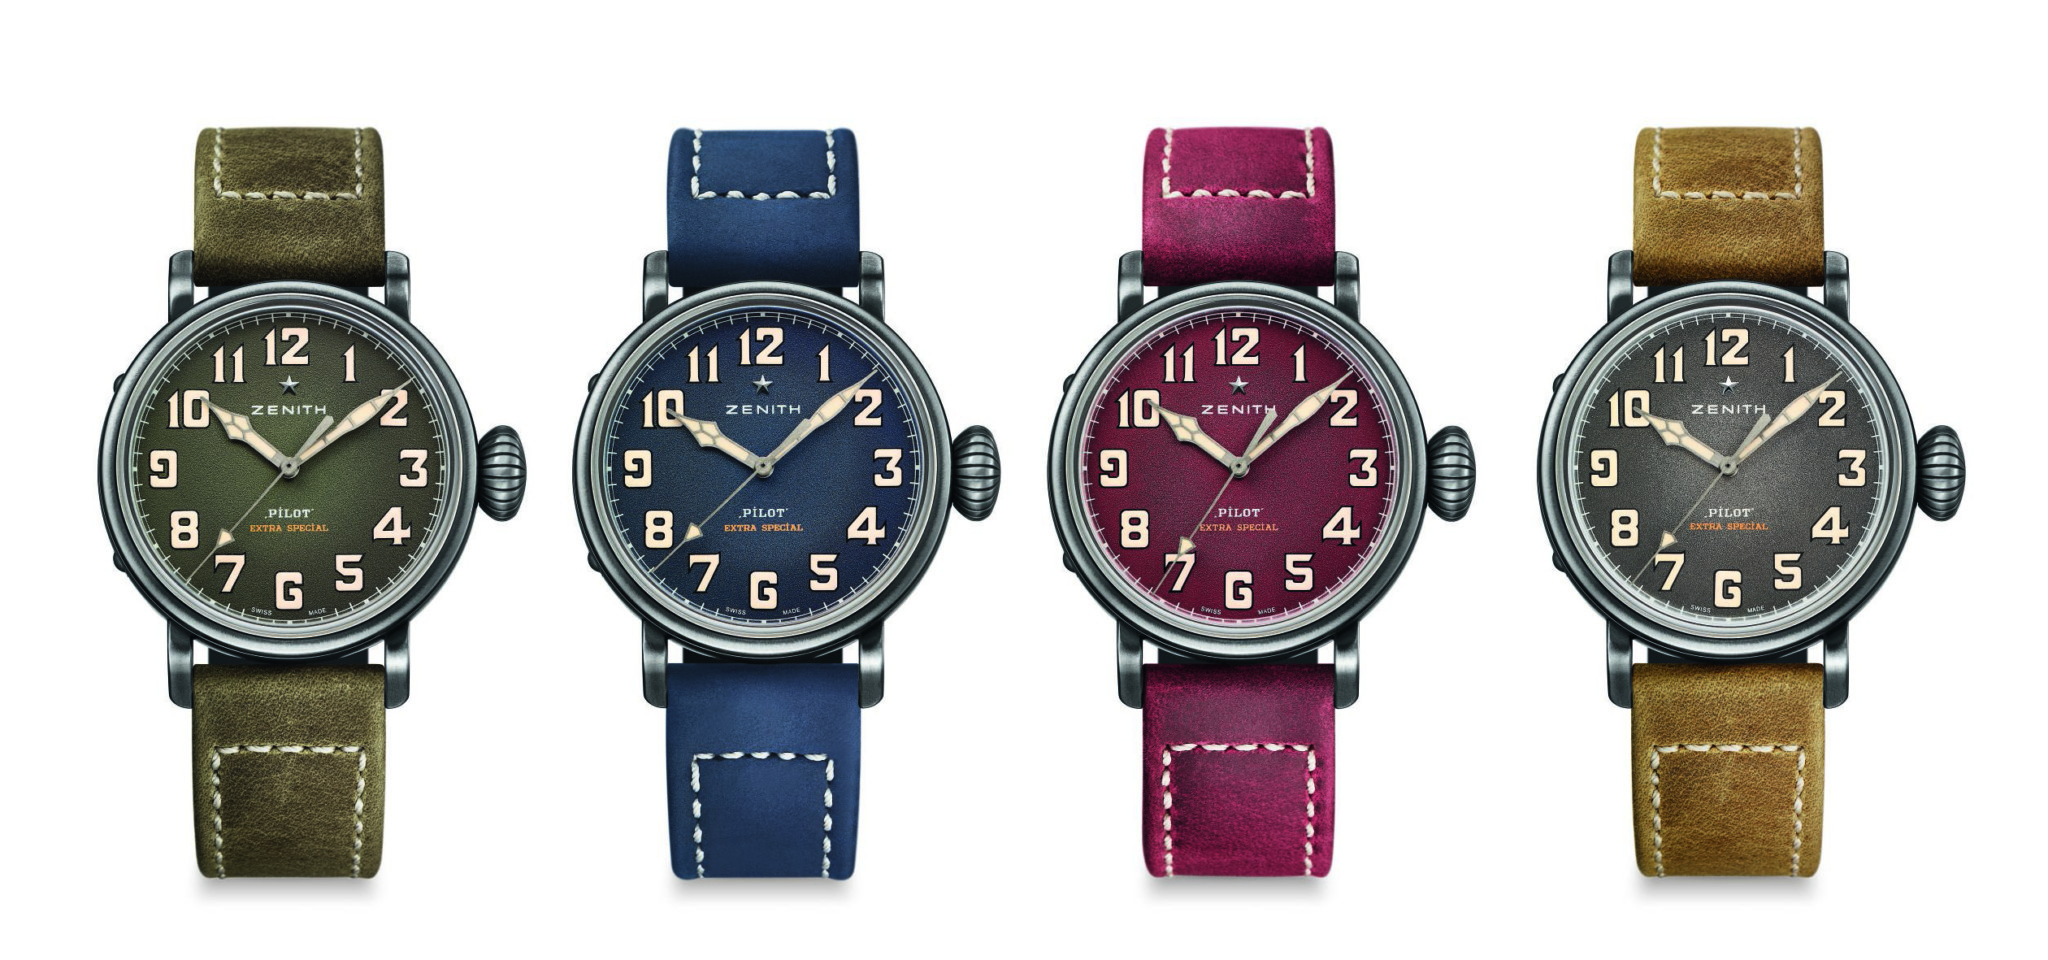 Zenith has created multiple colours of its Pilot Type 20 this year that will look great on display.